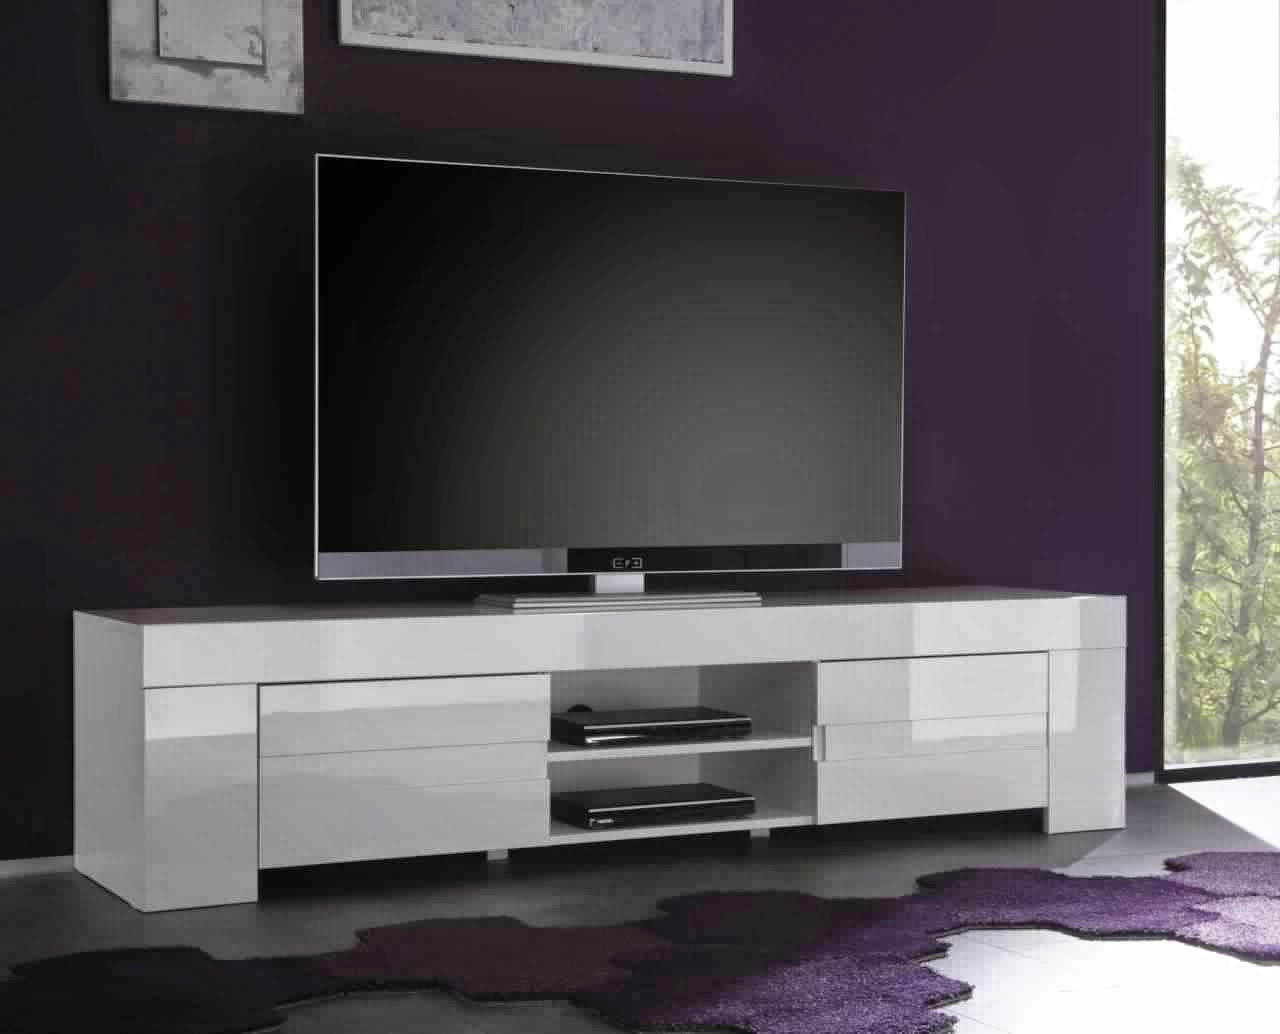 meuble tv maison du monde long island – Artzeincom -> Meuble Tv Hifi Maison Du Monde